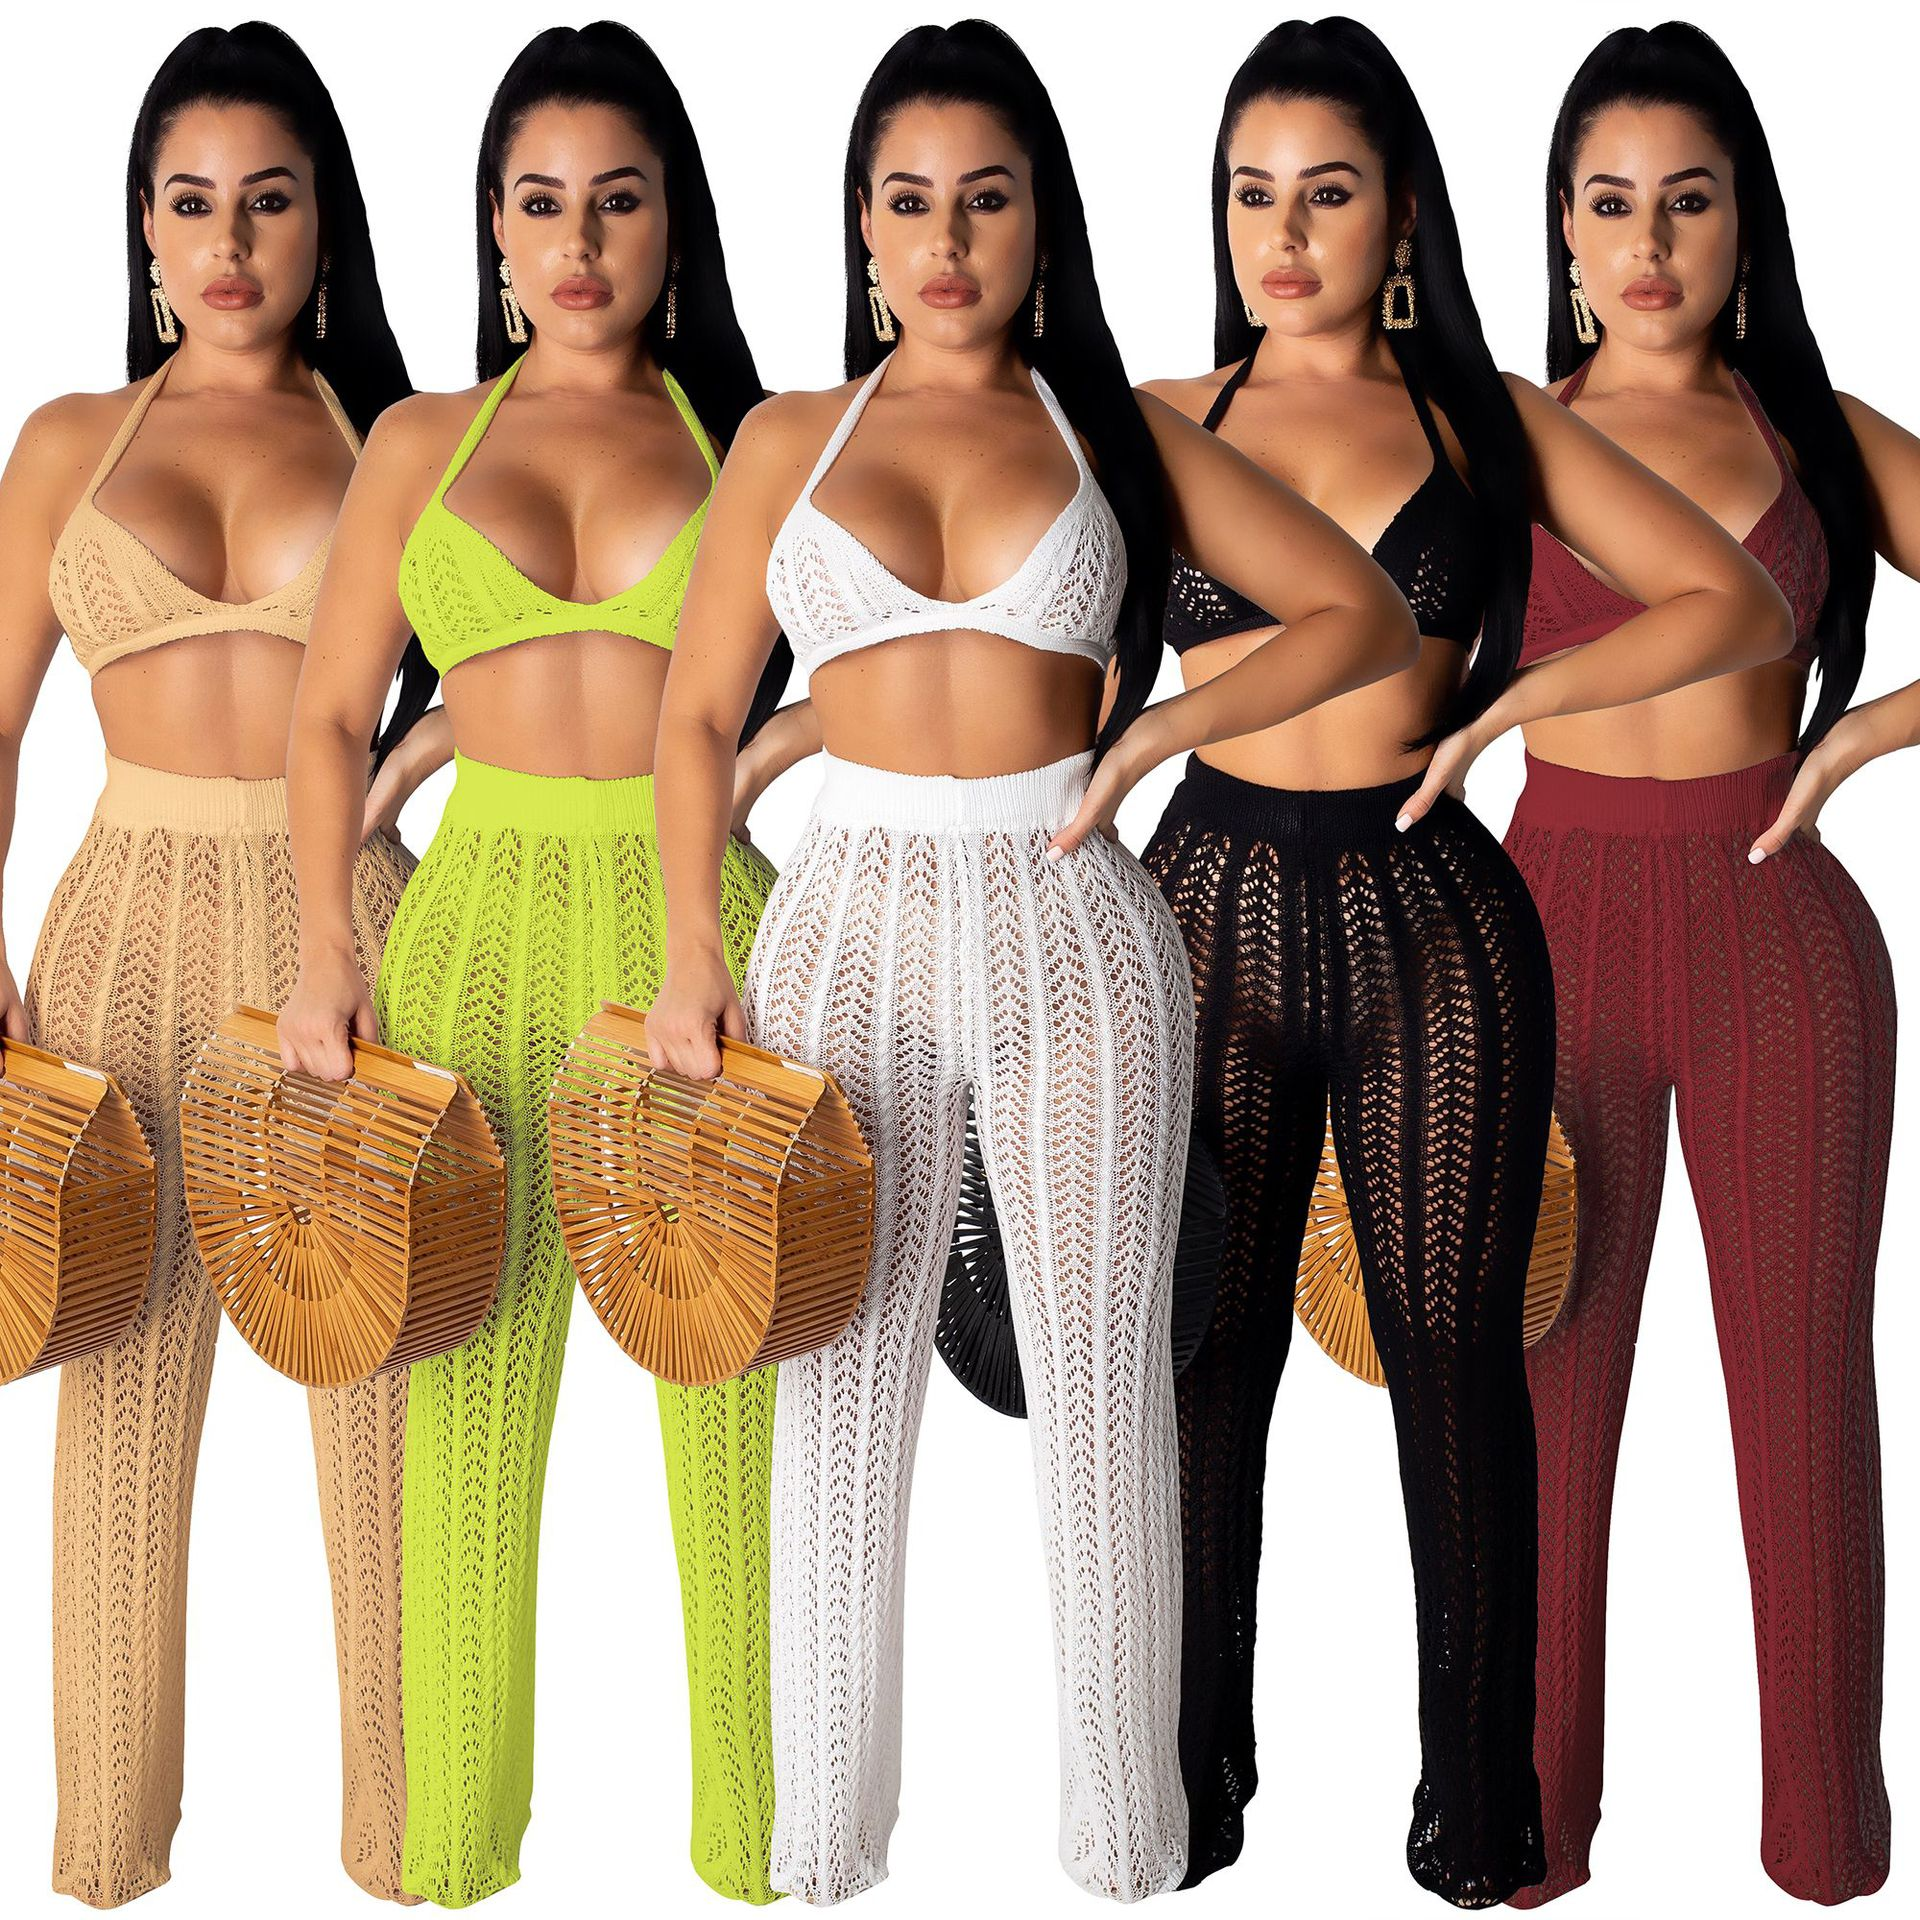 2019 Summer New Style Europe And America-WOMEN'S Dress-Style Knitted Grid Hollow Out Transparent Two-Piece Set Hot Selling